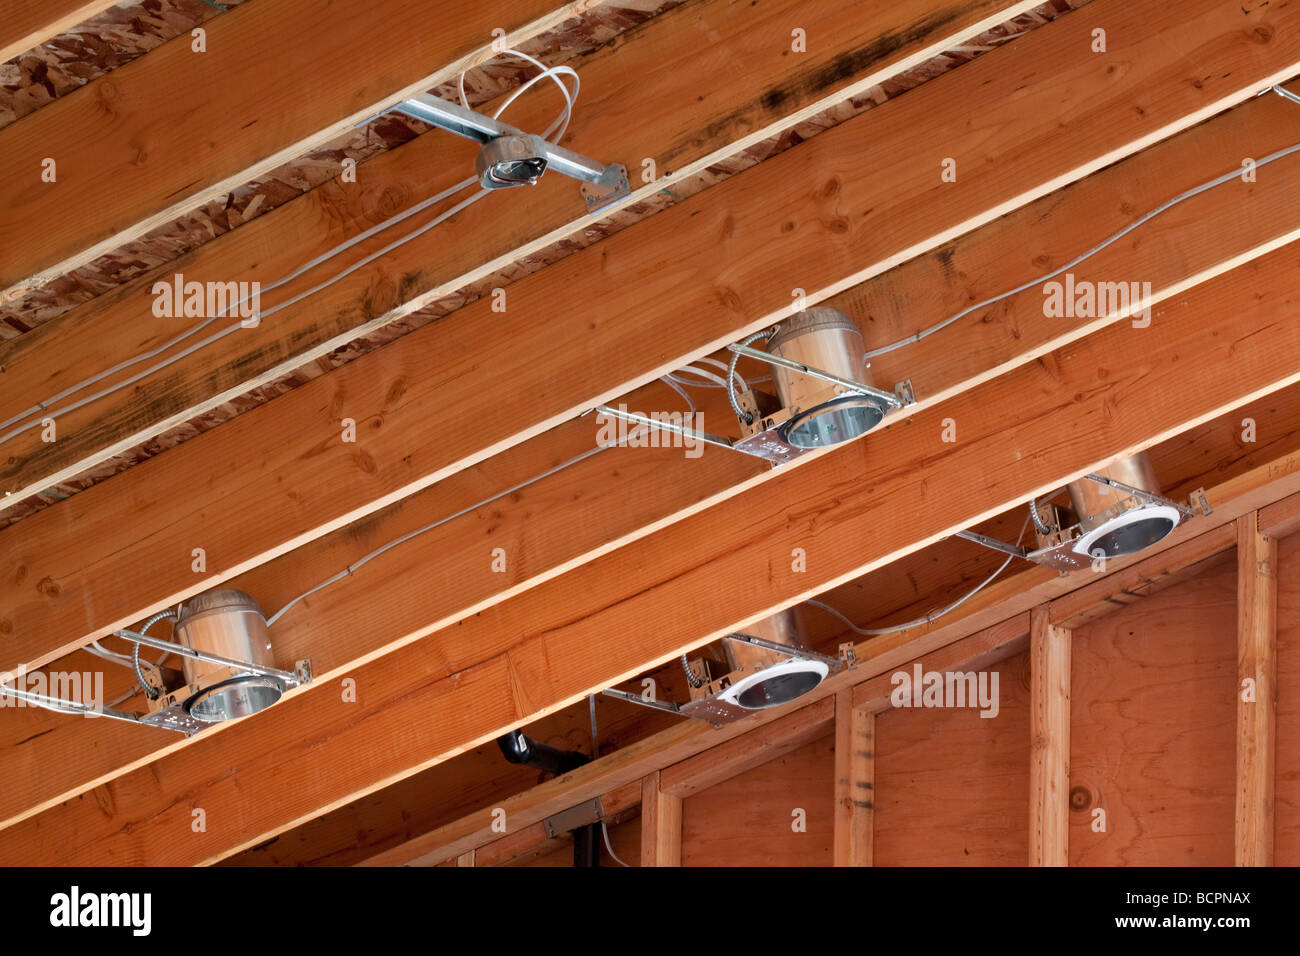 Wiring For Vaulted Ceilings Wire Data Schema Short Circuit Tester Diagram Measuringandtestcircuit Lighting Cans And Installed In The Rafters Of A Stock Rh Alamy Com Coffered Ceiling Arched